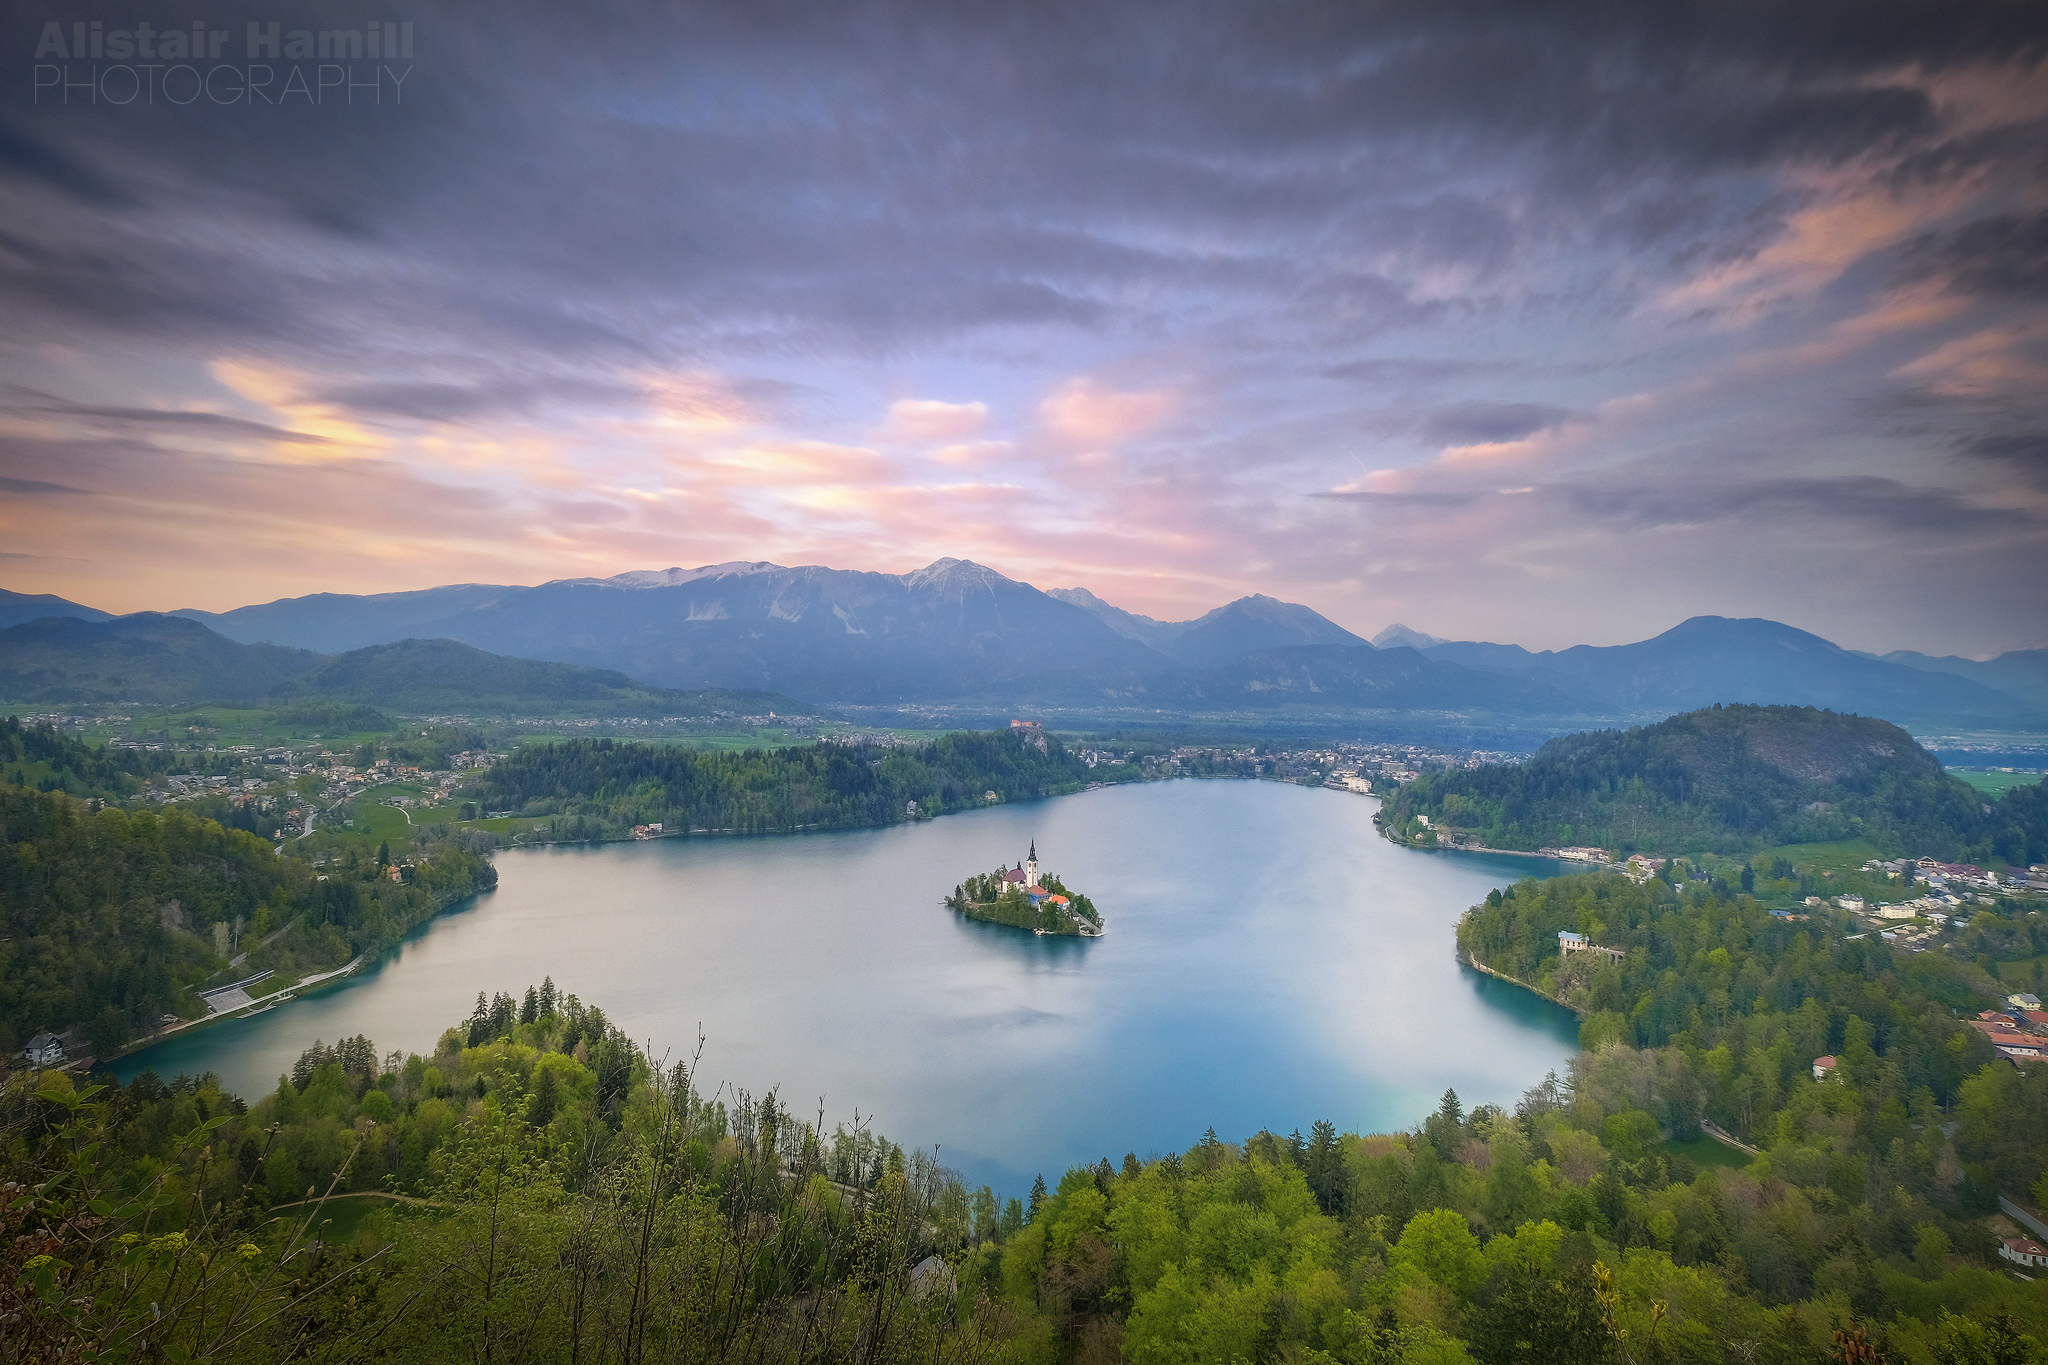 Bled+sunset+from+above+version+3+(large)+WM.jpg